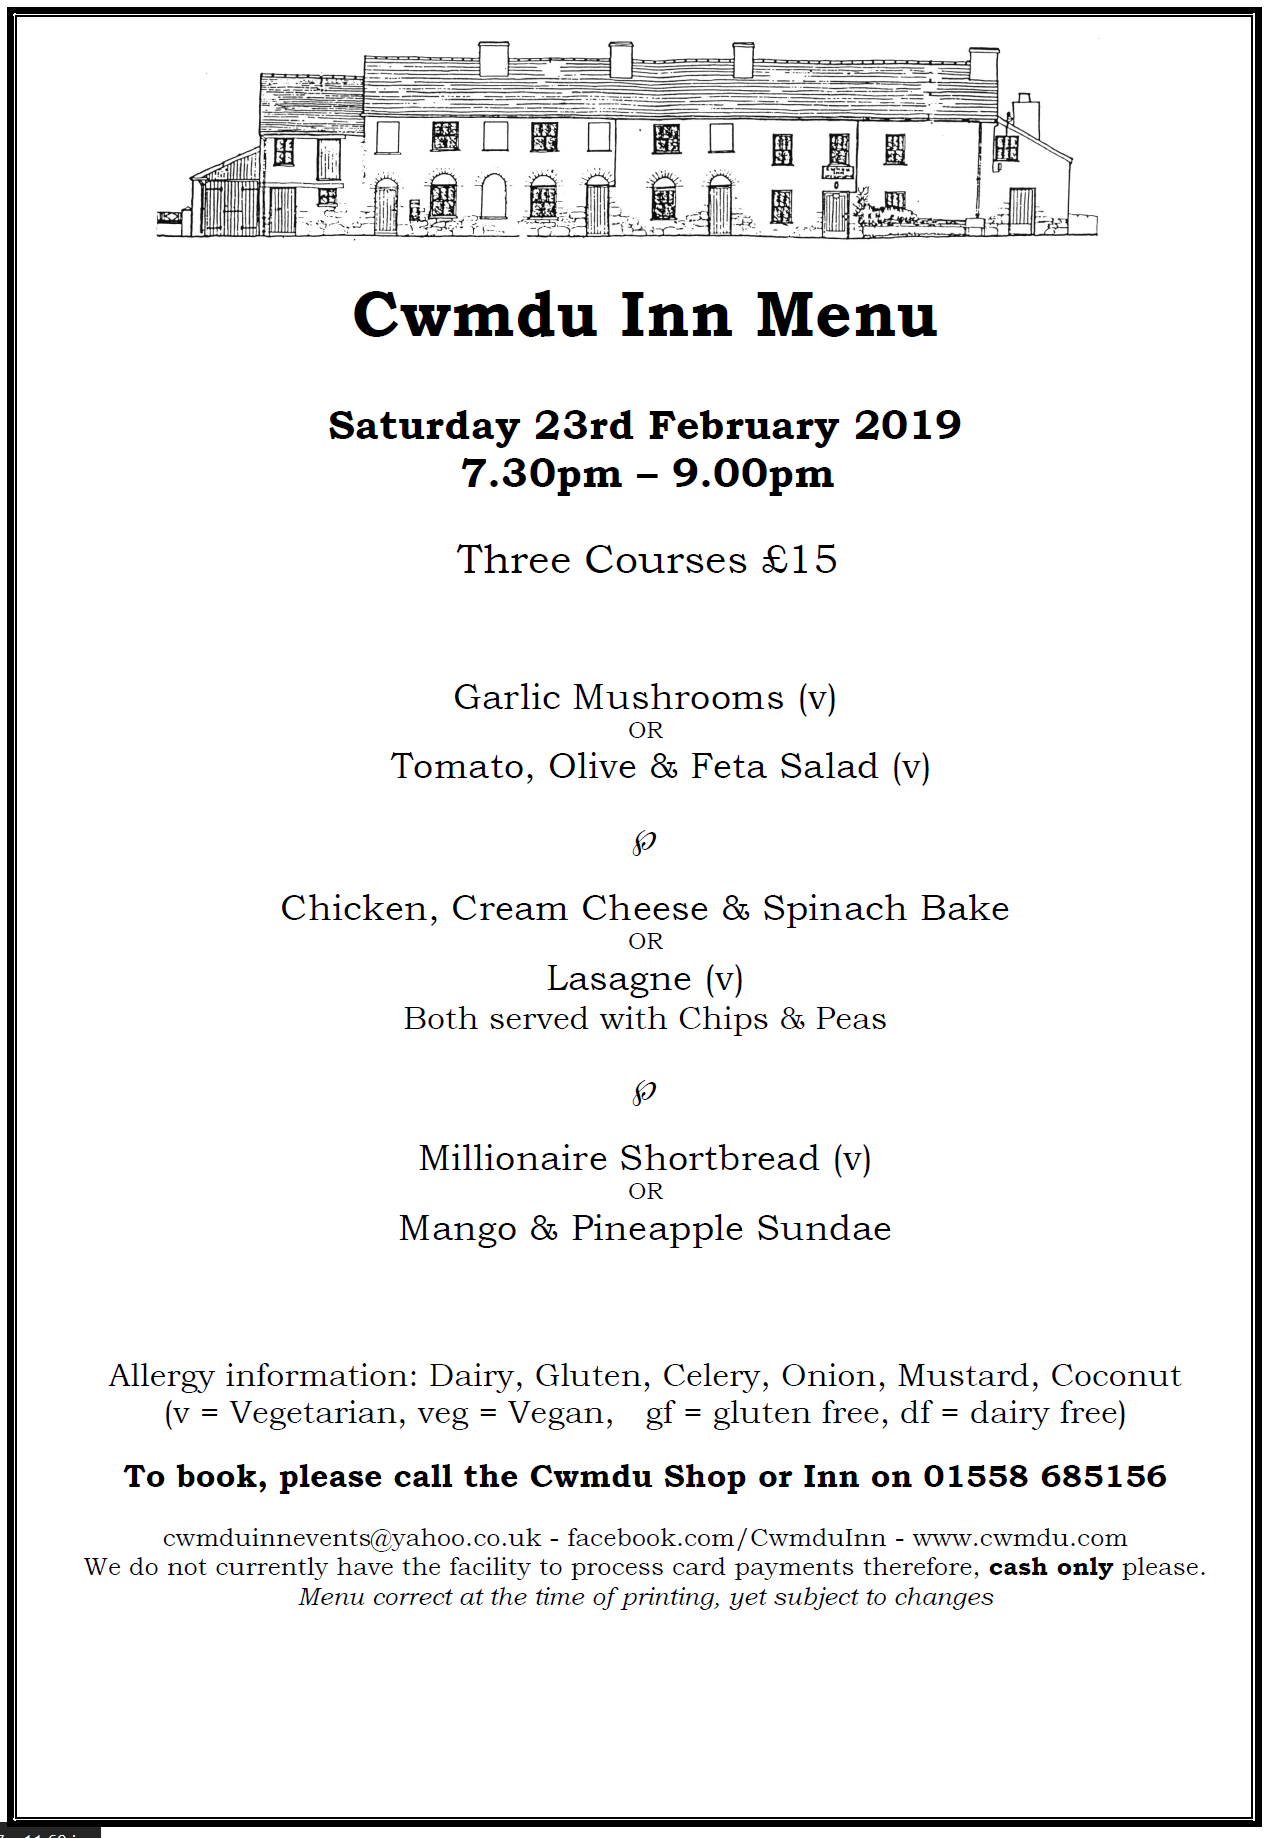 Cwmdu-Inn-Menu-23-February-2019